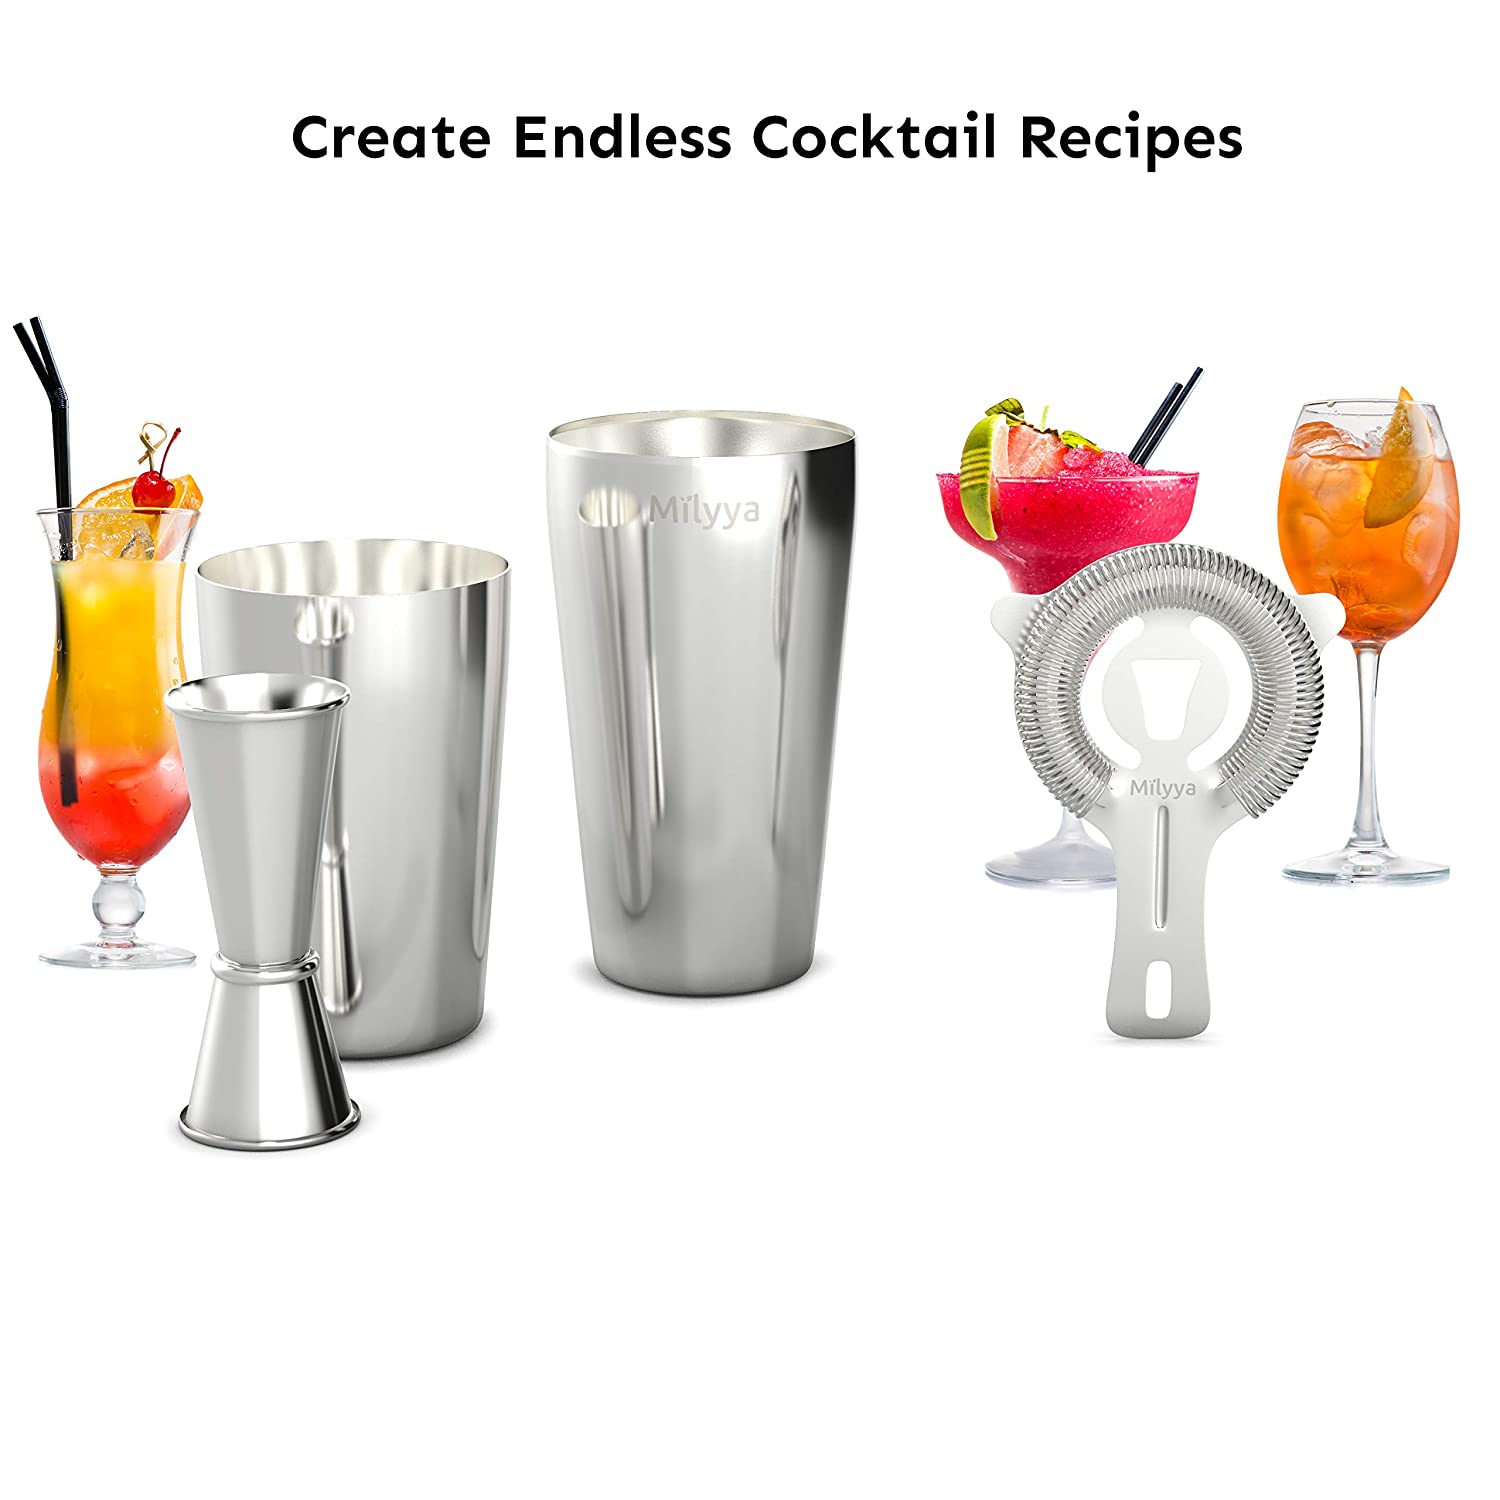 4 Piece Stainless Steel Bar Shaker Set Perfect Home Bar Accessories For Awesome Cocktail Mixing Experience With Jigger And Cocktail Strainer Professional Boston Shaker Home Kitchen Kitchen Dining